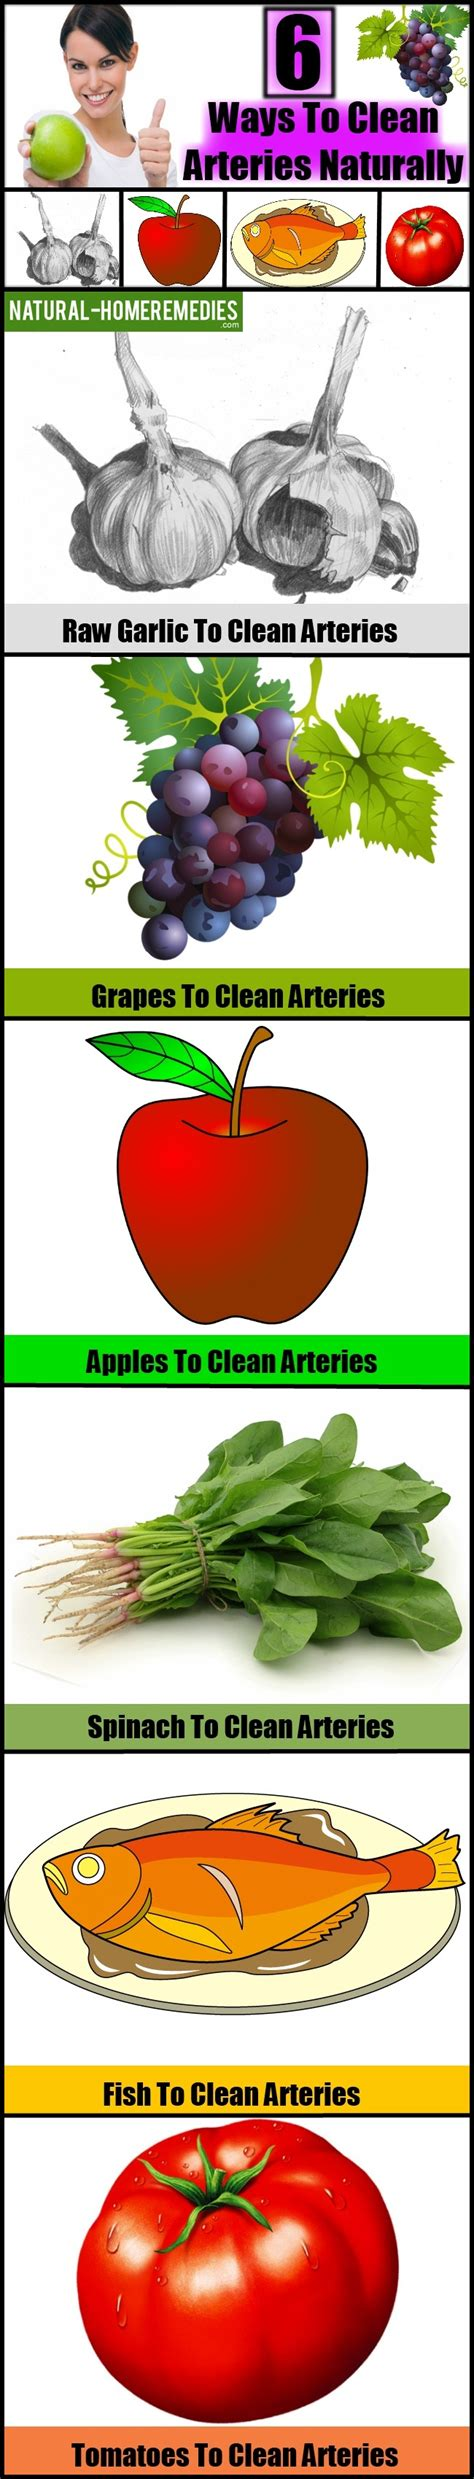 6 Ways To Clean Arteries Naturally  Natural Way To Unclog